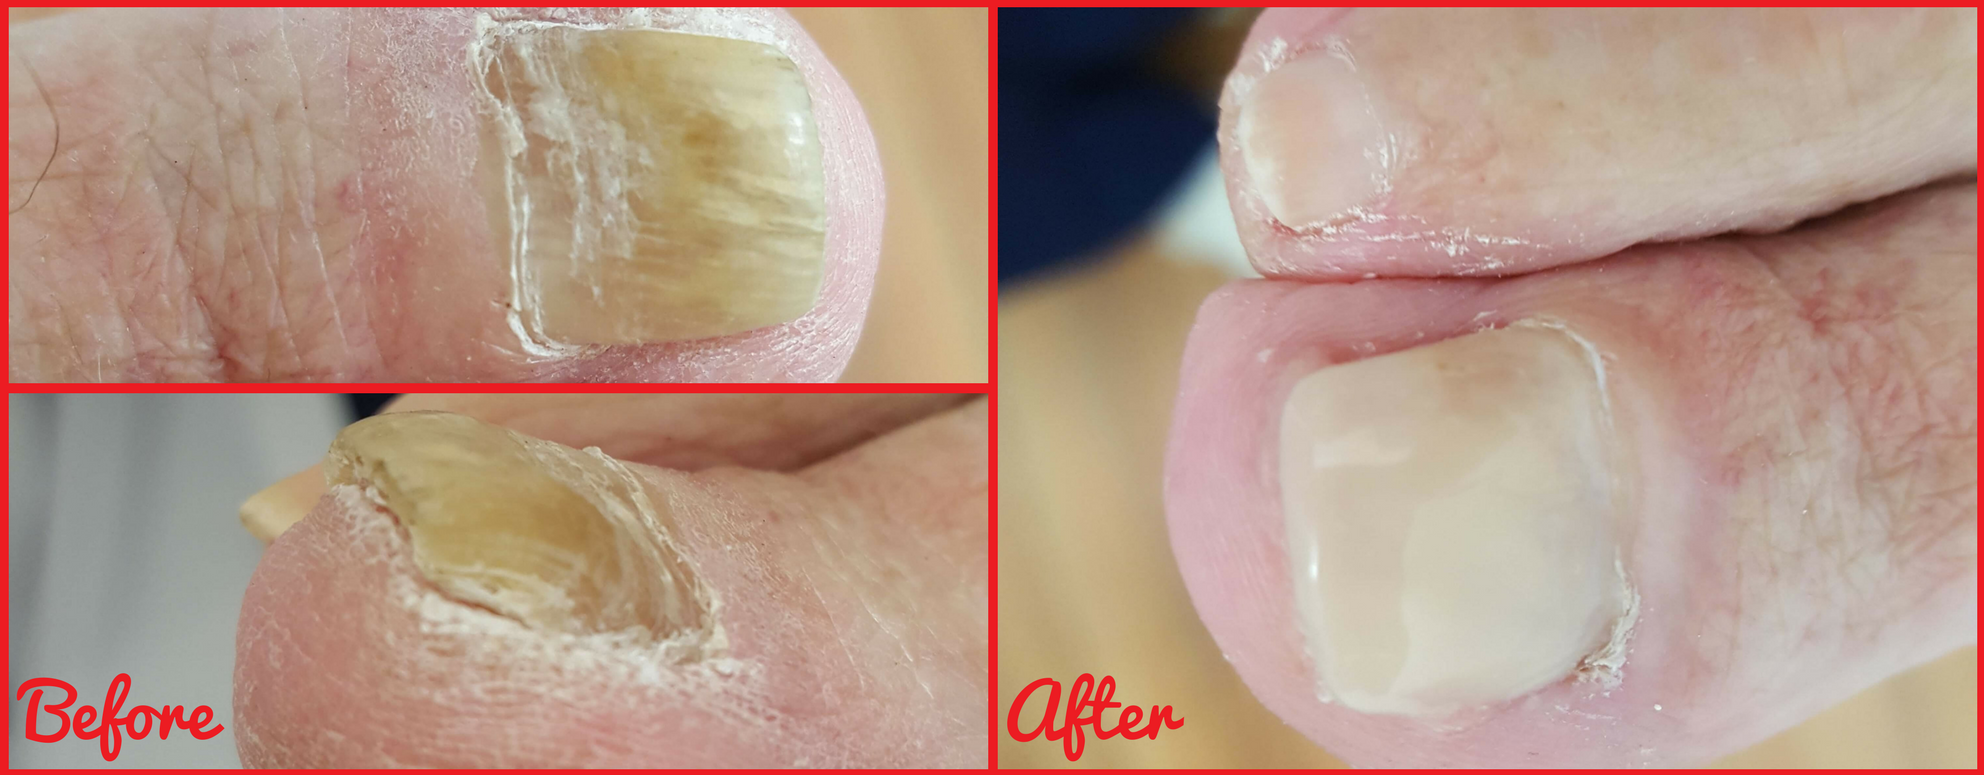 A Day in the Life of a Podiatrist: Gel Nail Reconstruction